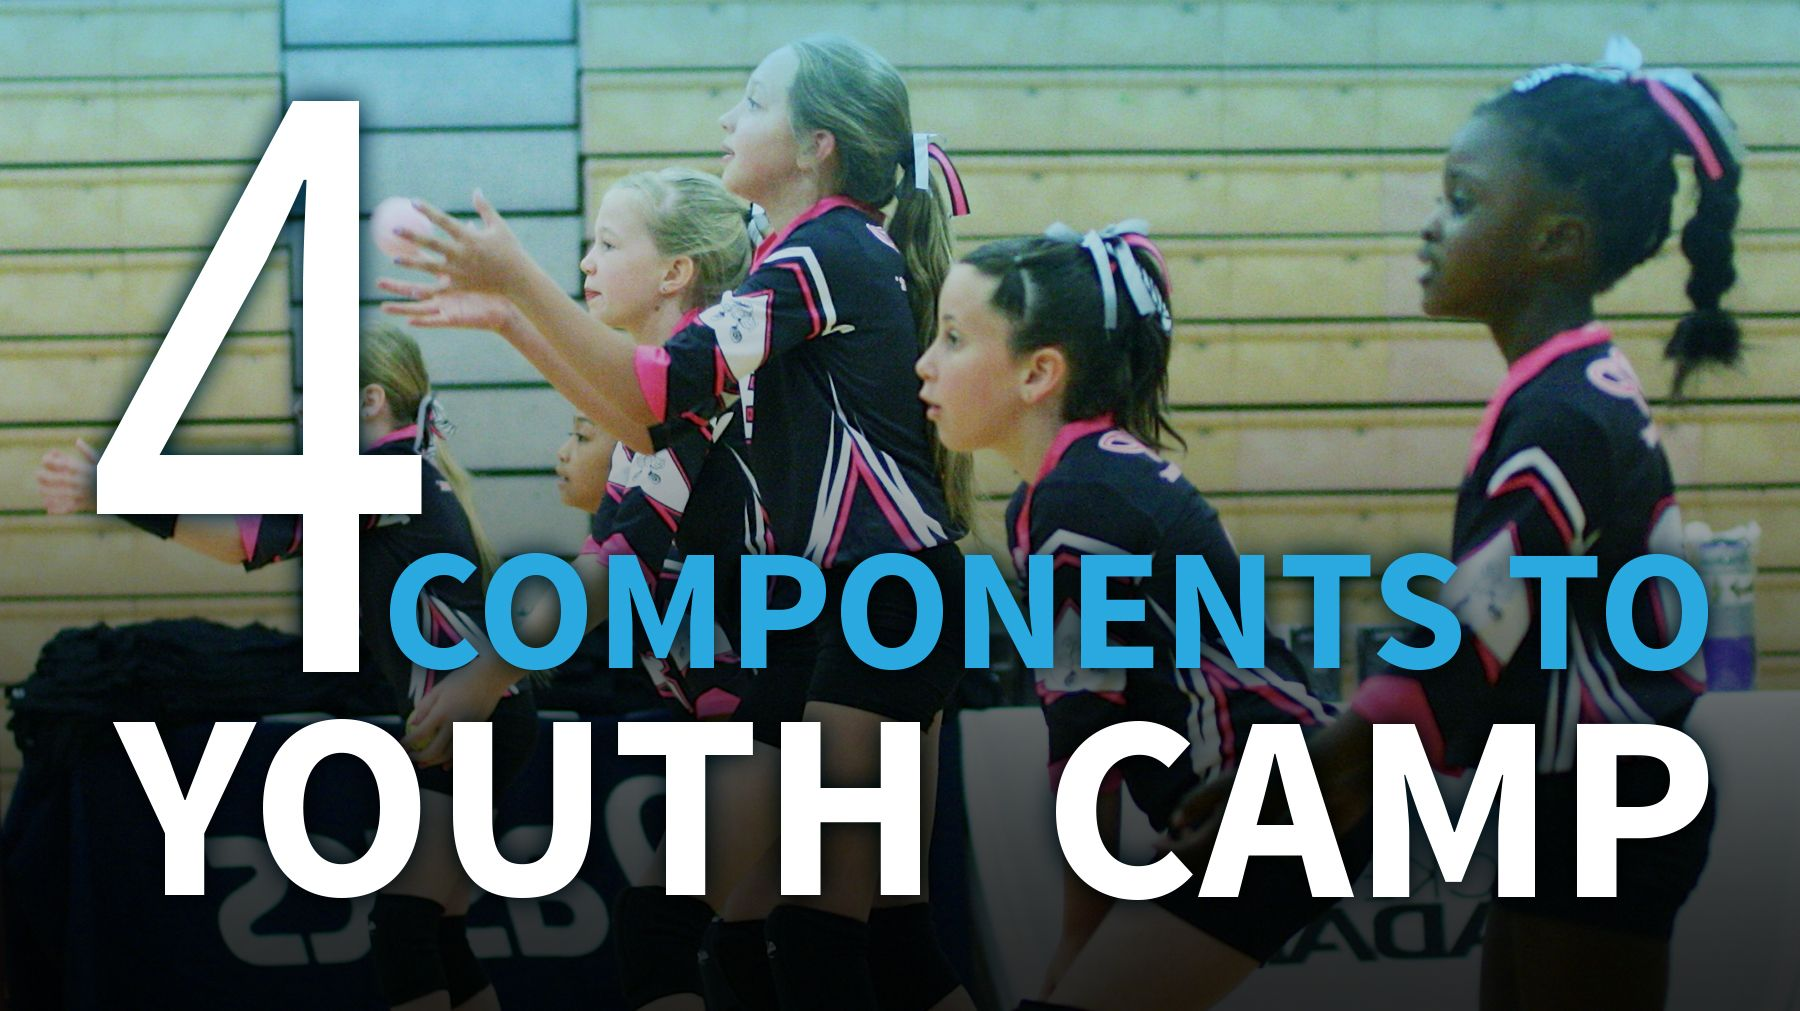 Four Key Components To A Successful Youth Camp The Art Of Coaching Volleyball Youth Camp Youth Volleyball Coaching Volleyball